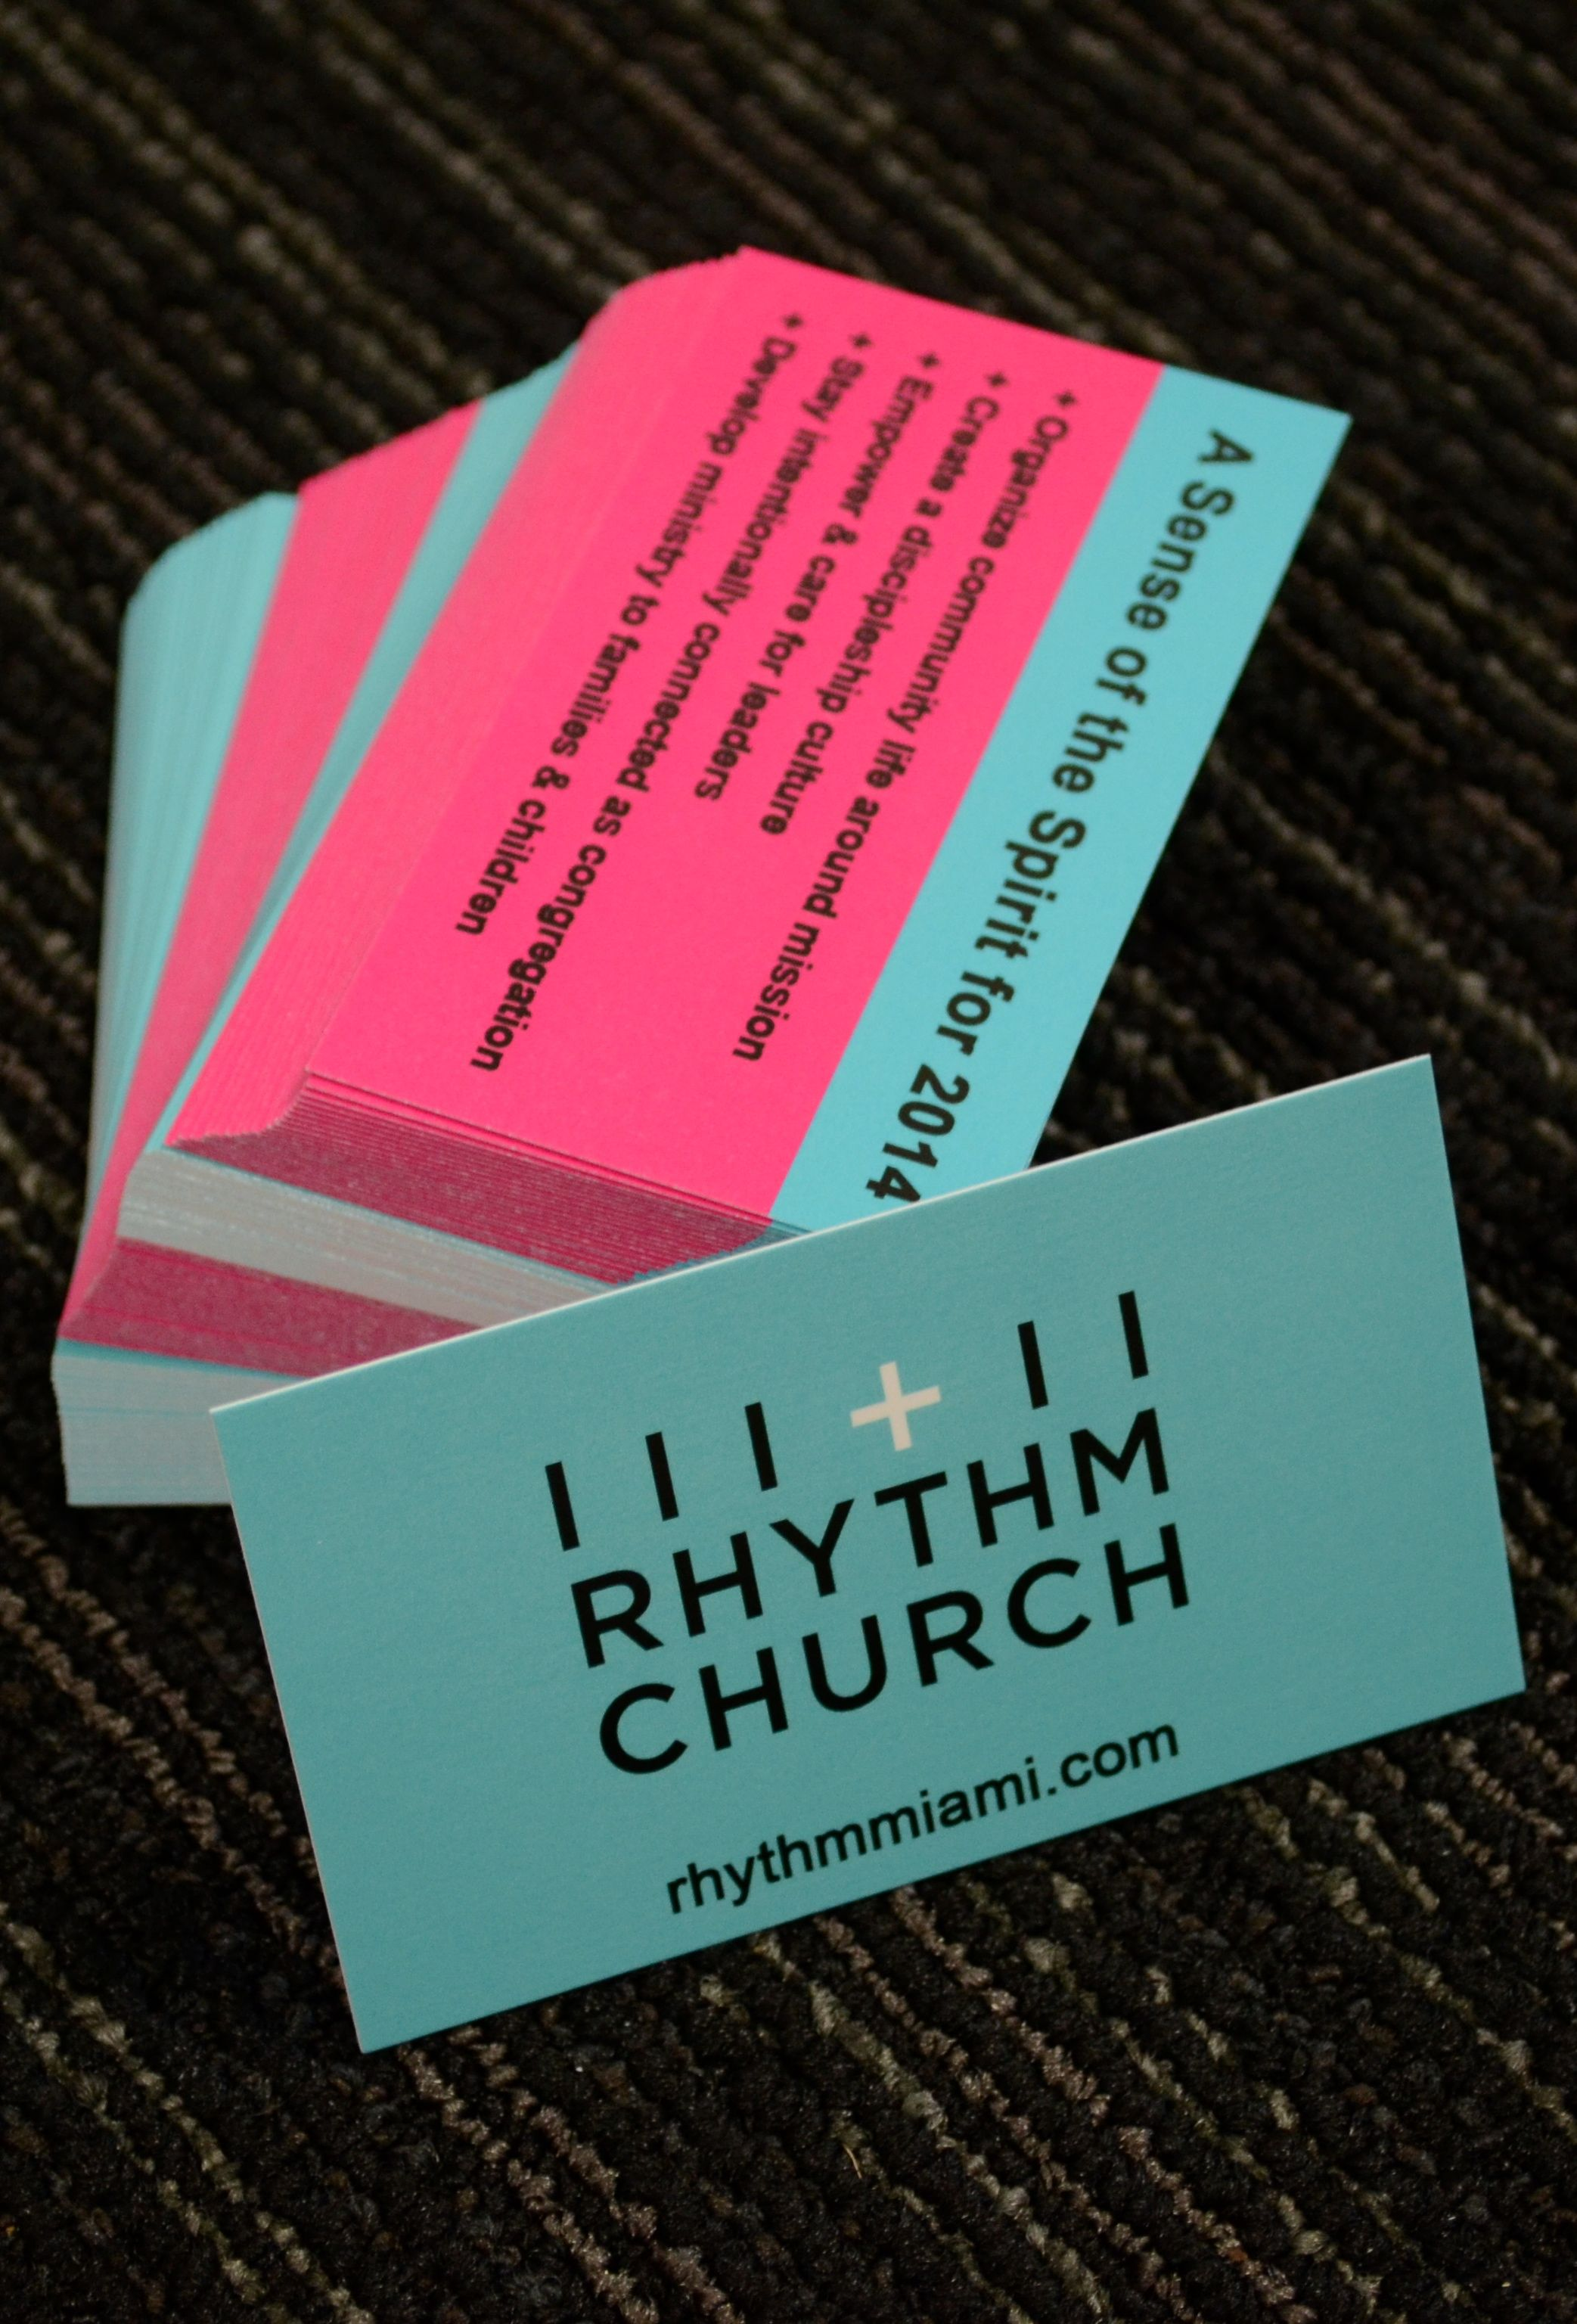 Church business cards | Printing and Branding | Pinterest ...